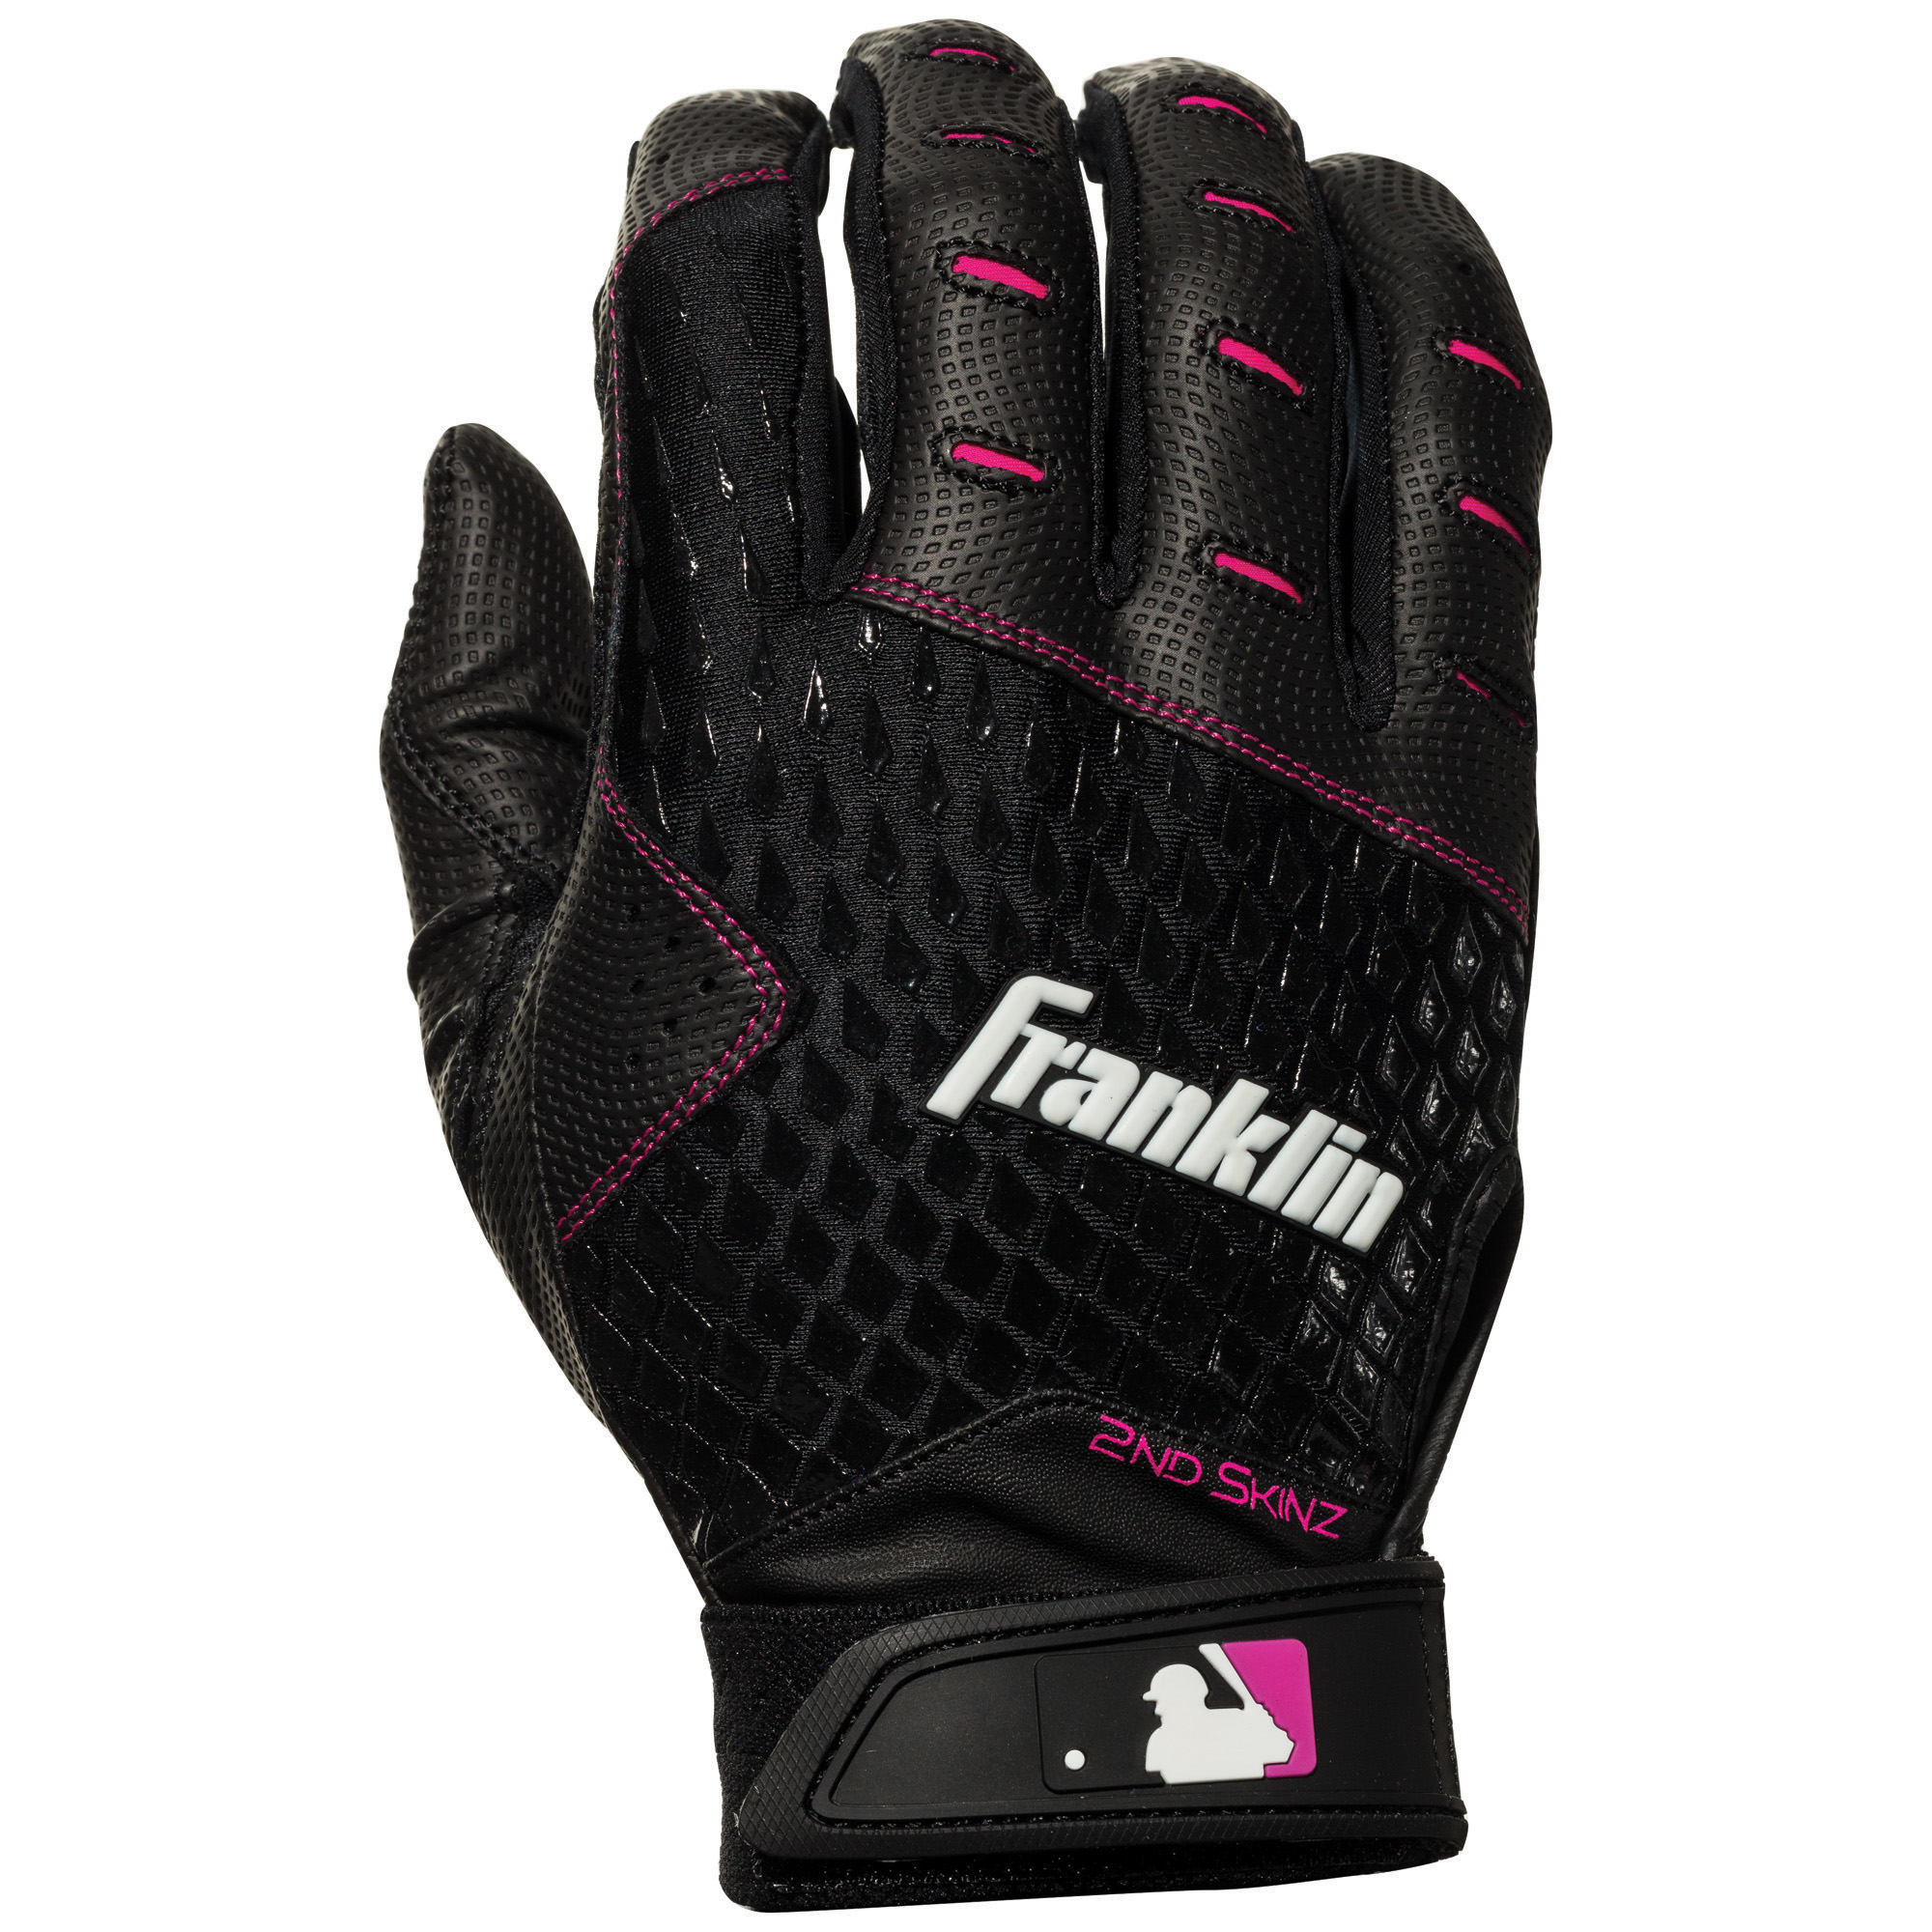 da9c825f Franklin Sports MLB 2nd-Skinz Fastpitch Batting Gloves - Black/Pink -  Women's Medium